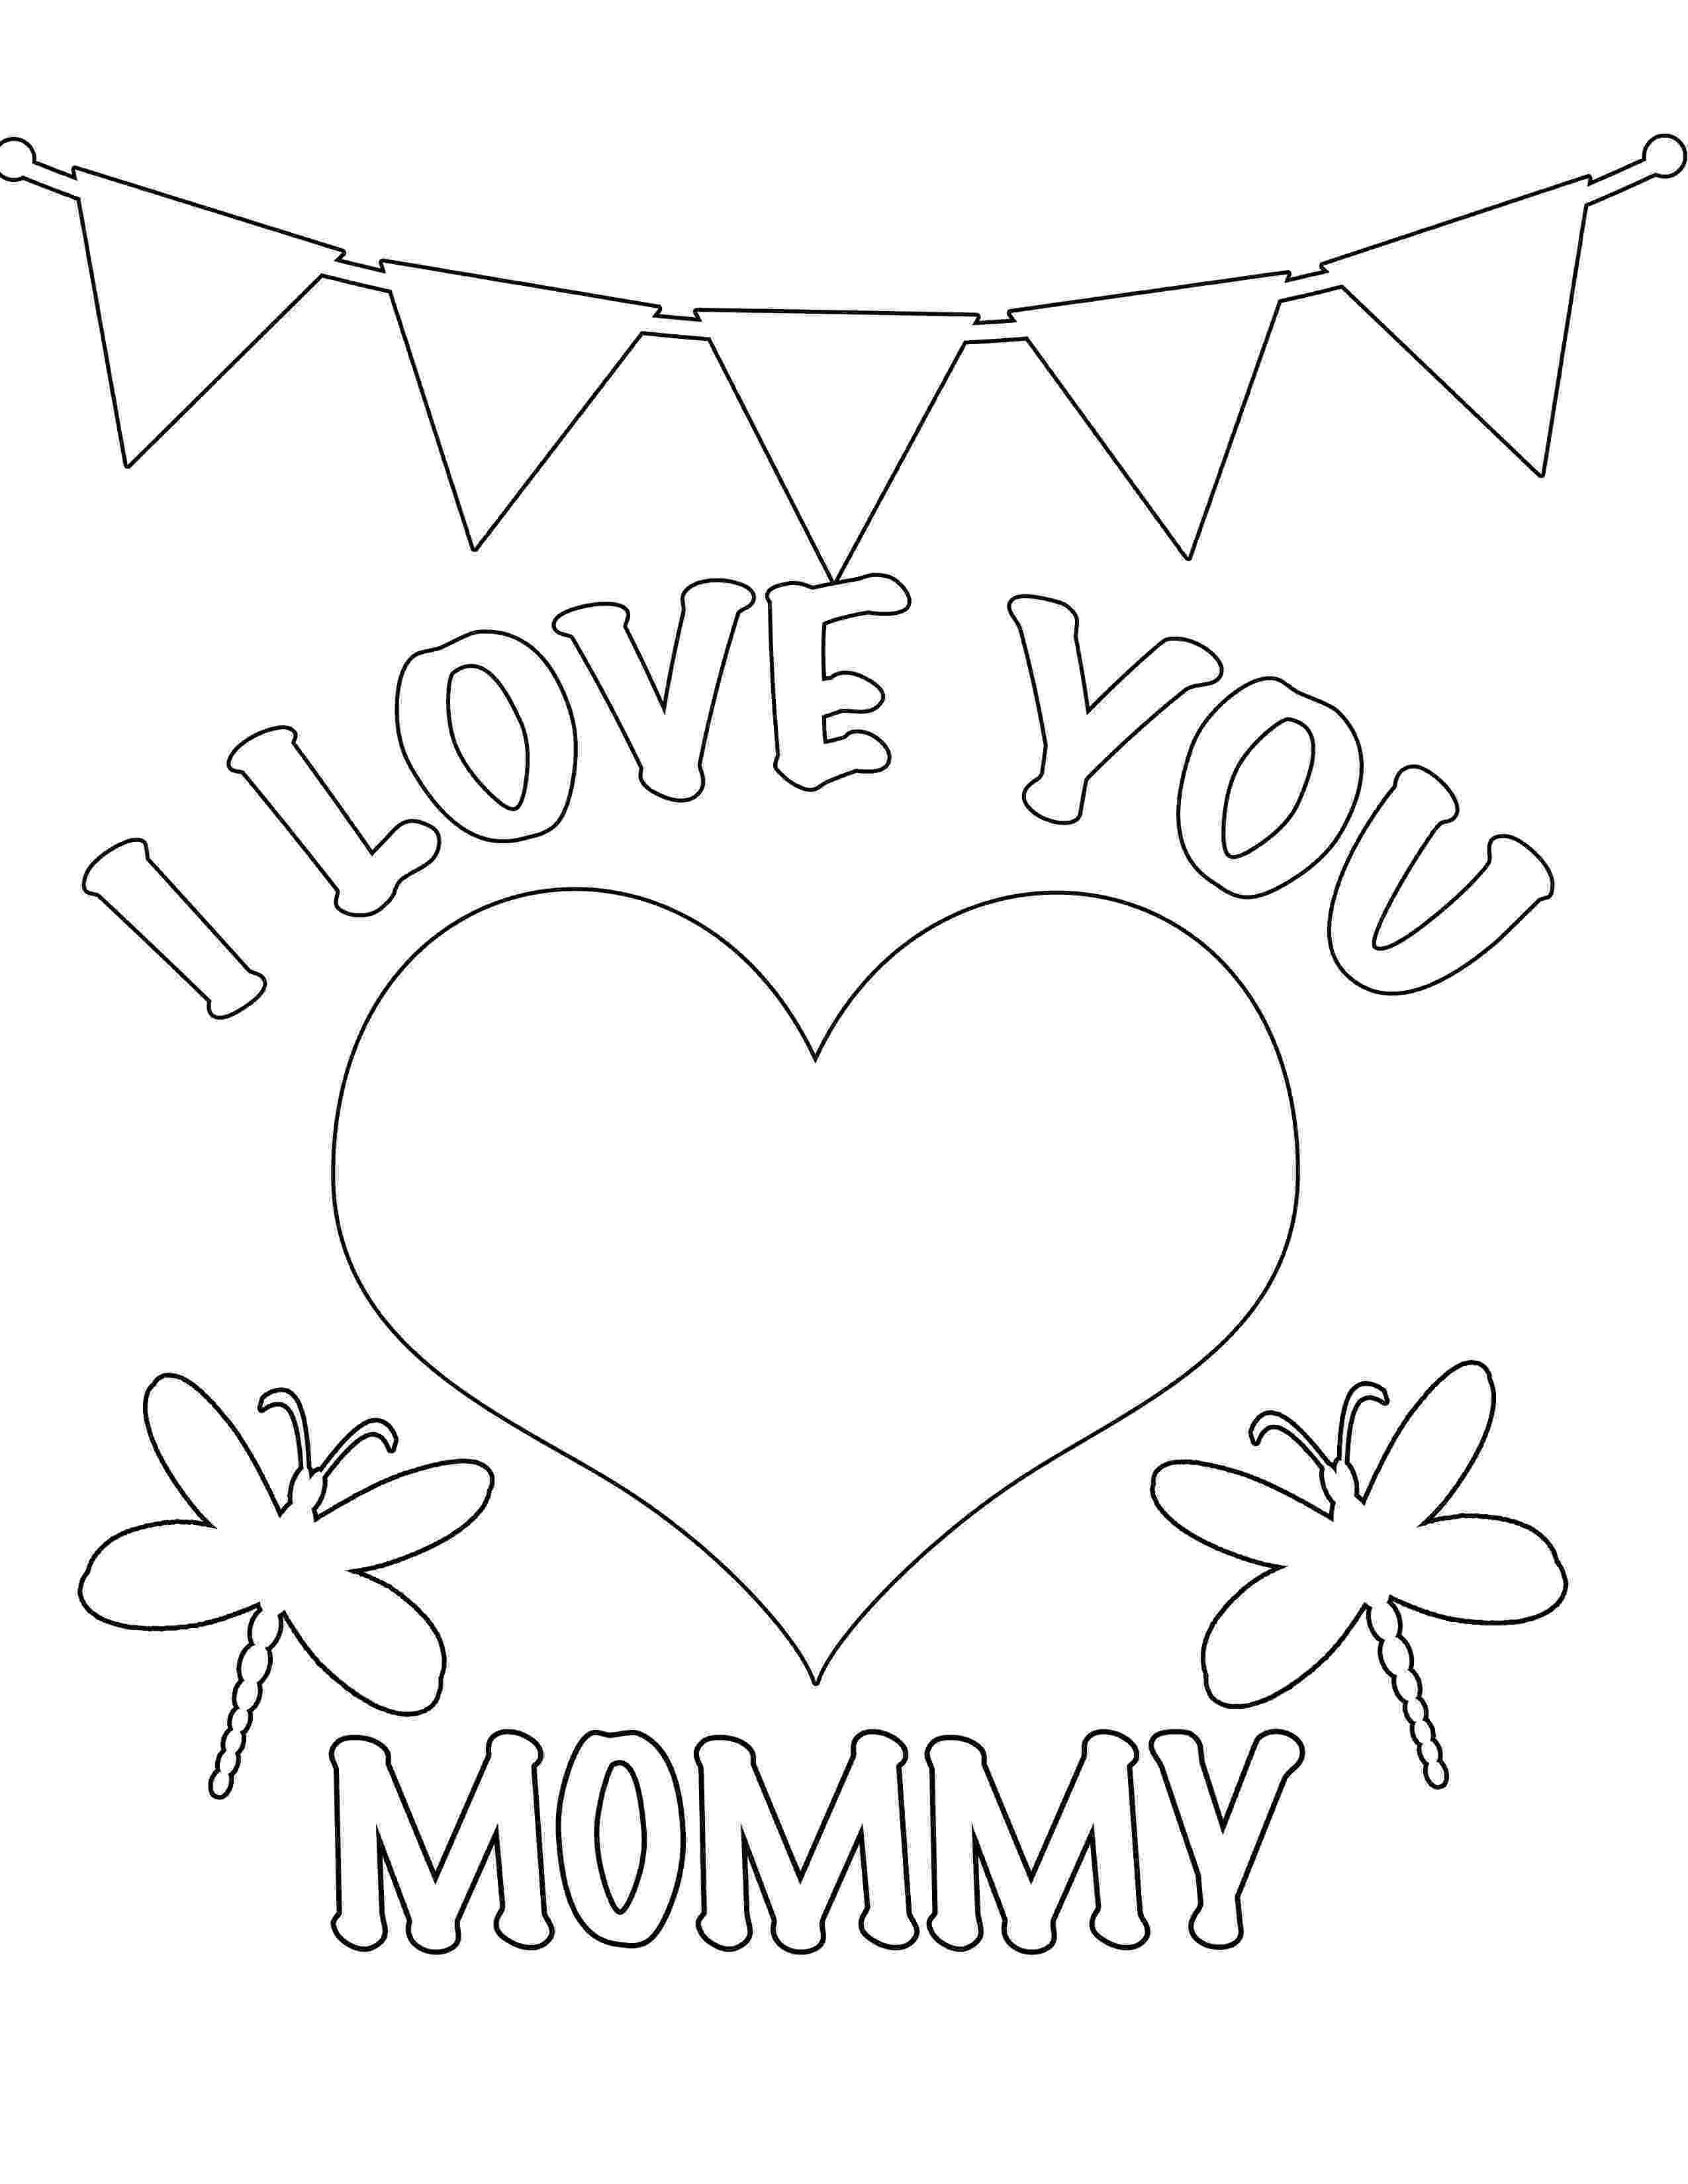 printable preschool coloring pages free printable preschool coloring pages best coloring pages preschool coloring printable